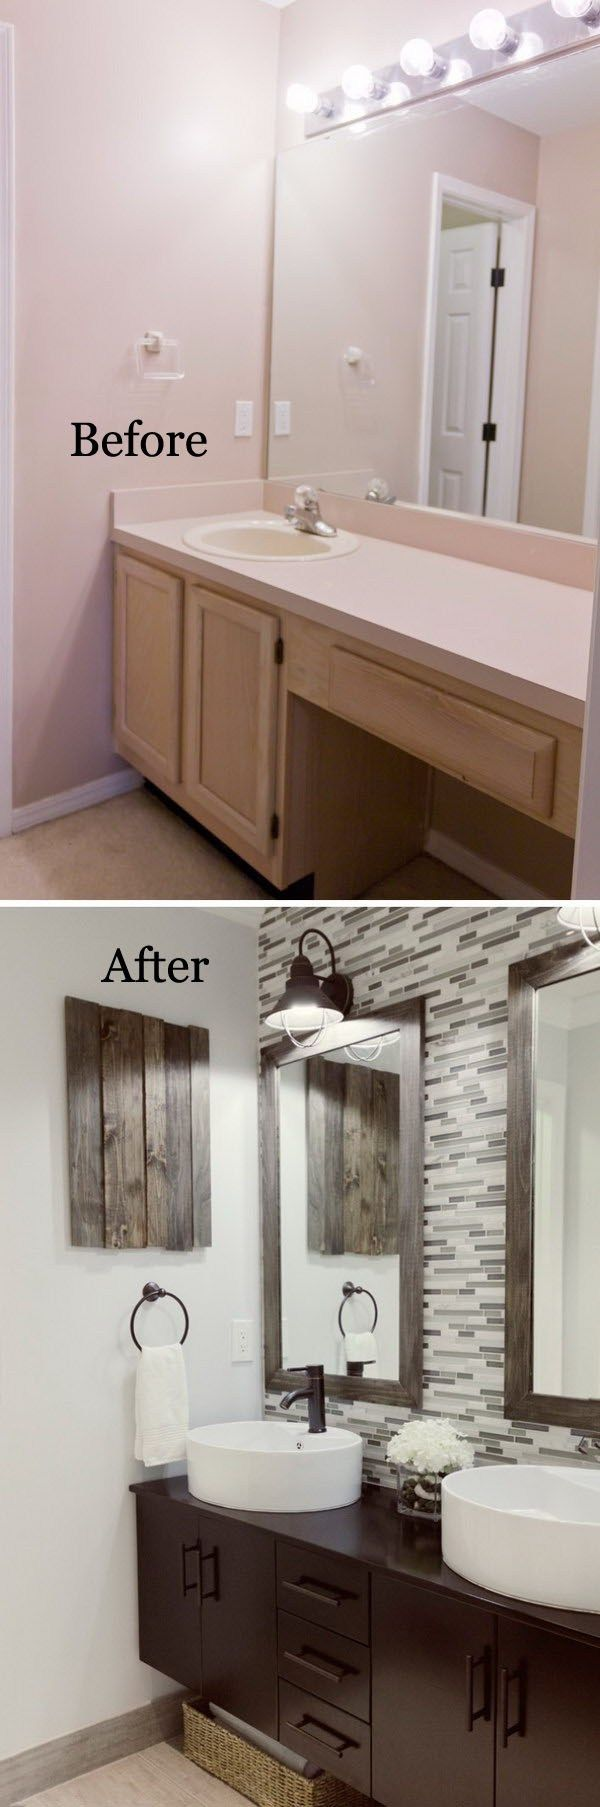 Bathroom Remodel Before And After Pics, Bathroom Remodels Before And After Pictures